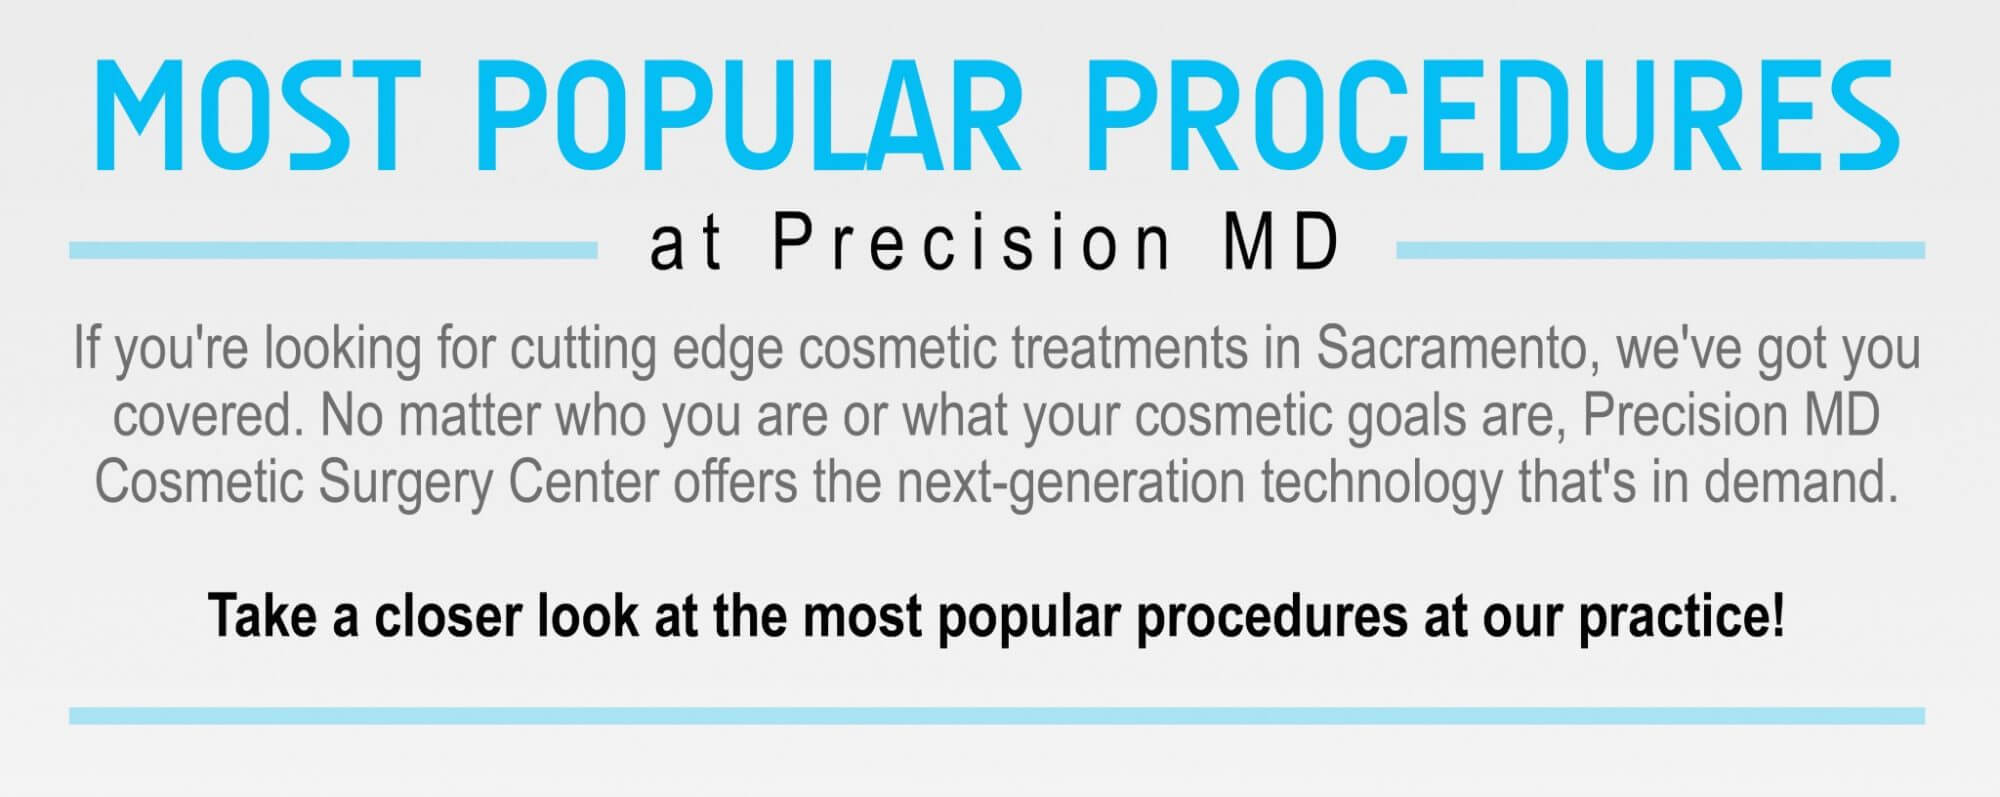 Popular Procedures at Precision MD